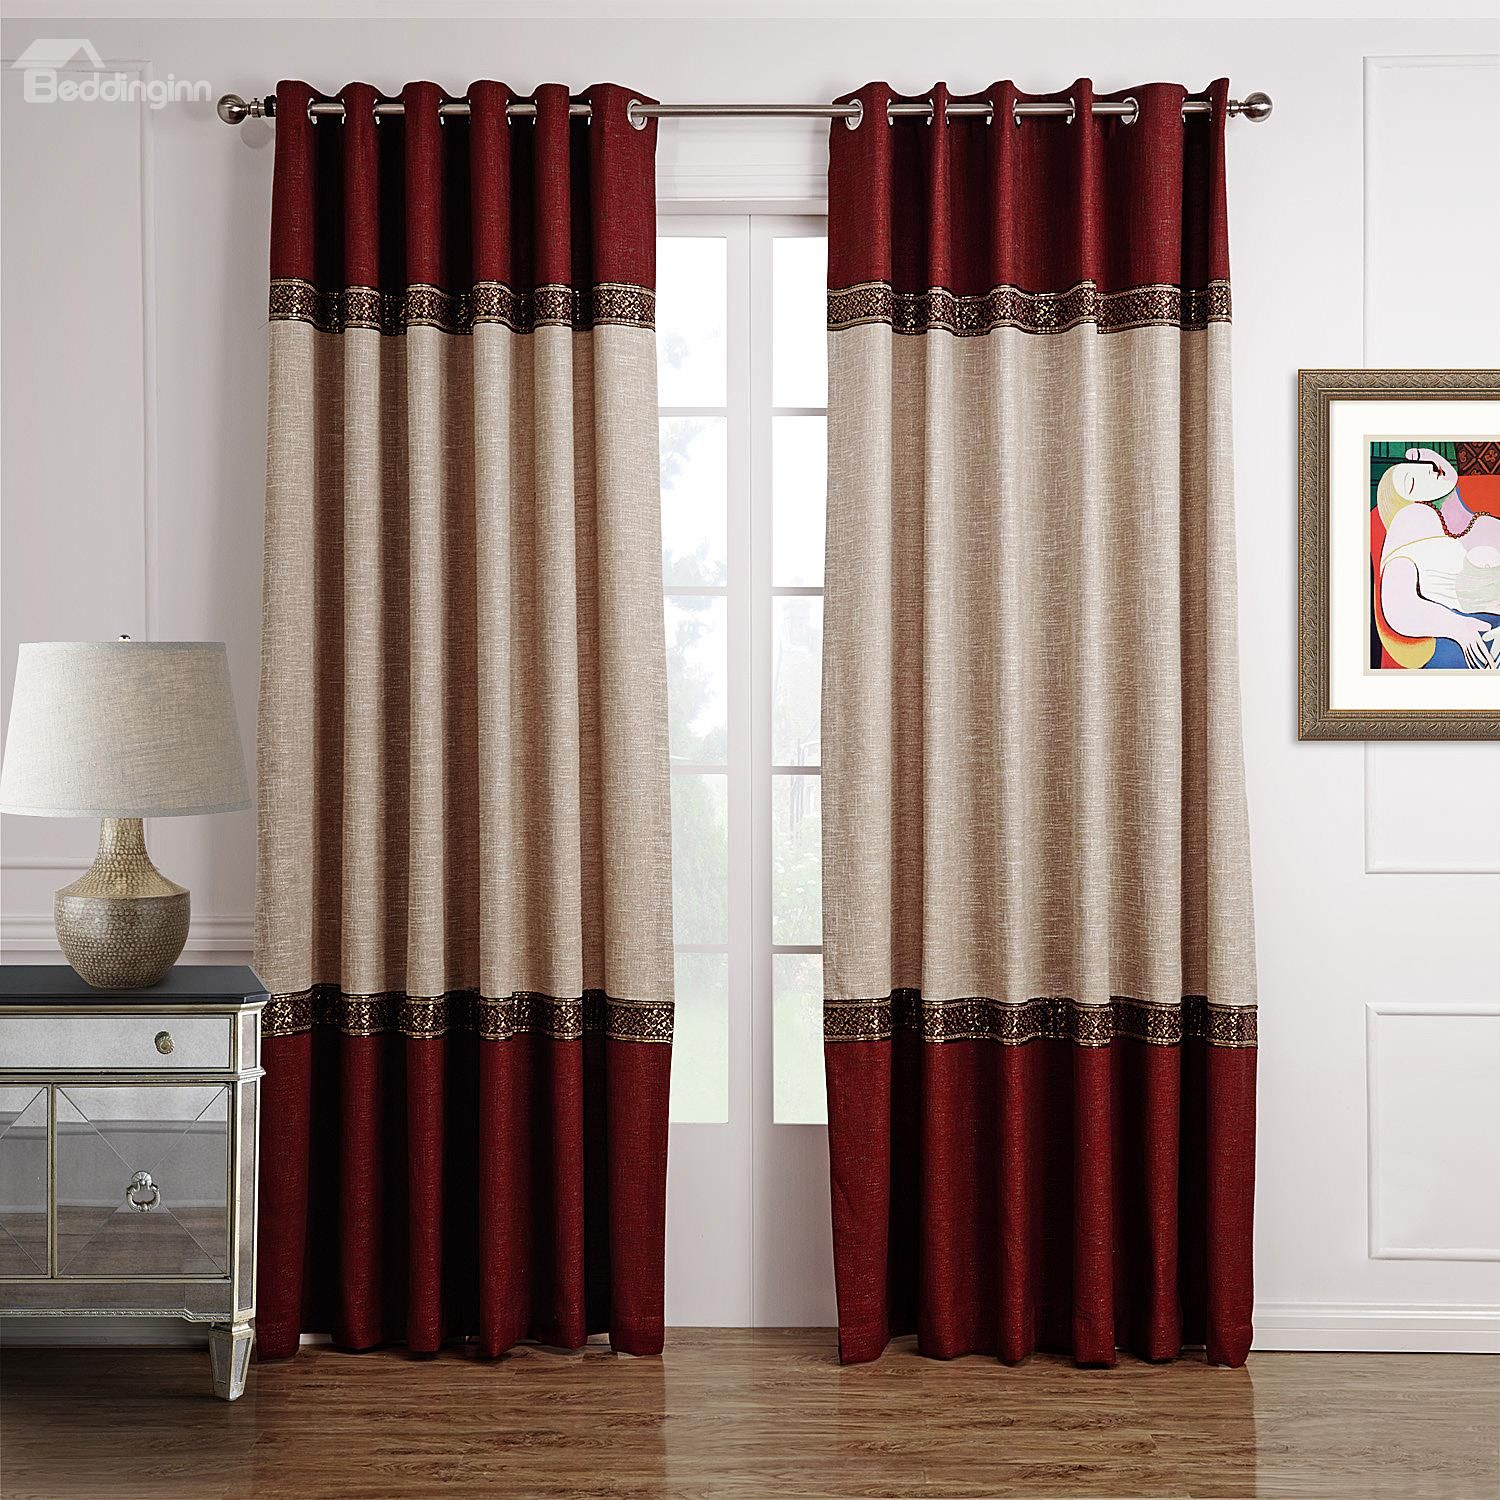 Hot Selling Fantastic Joint Color Decorative Border Design Custom Curtain Curtains Living Room Red Curtains Curtain Decor